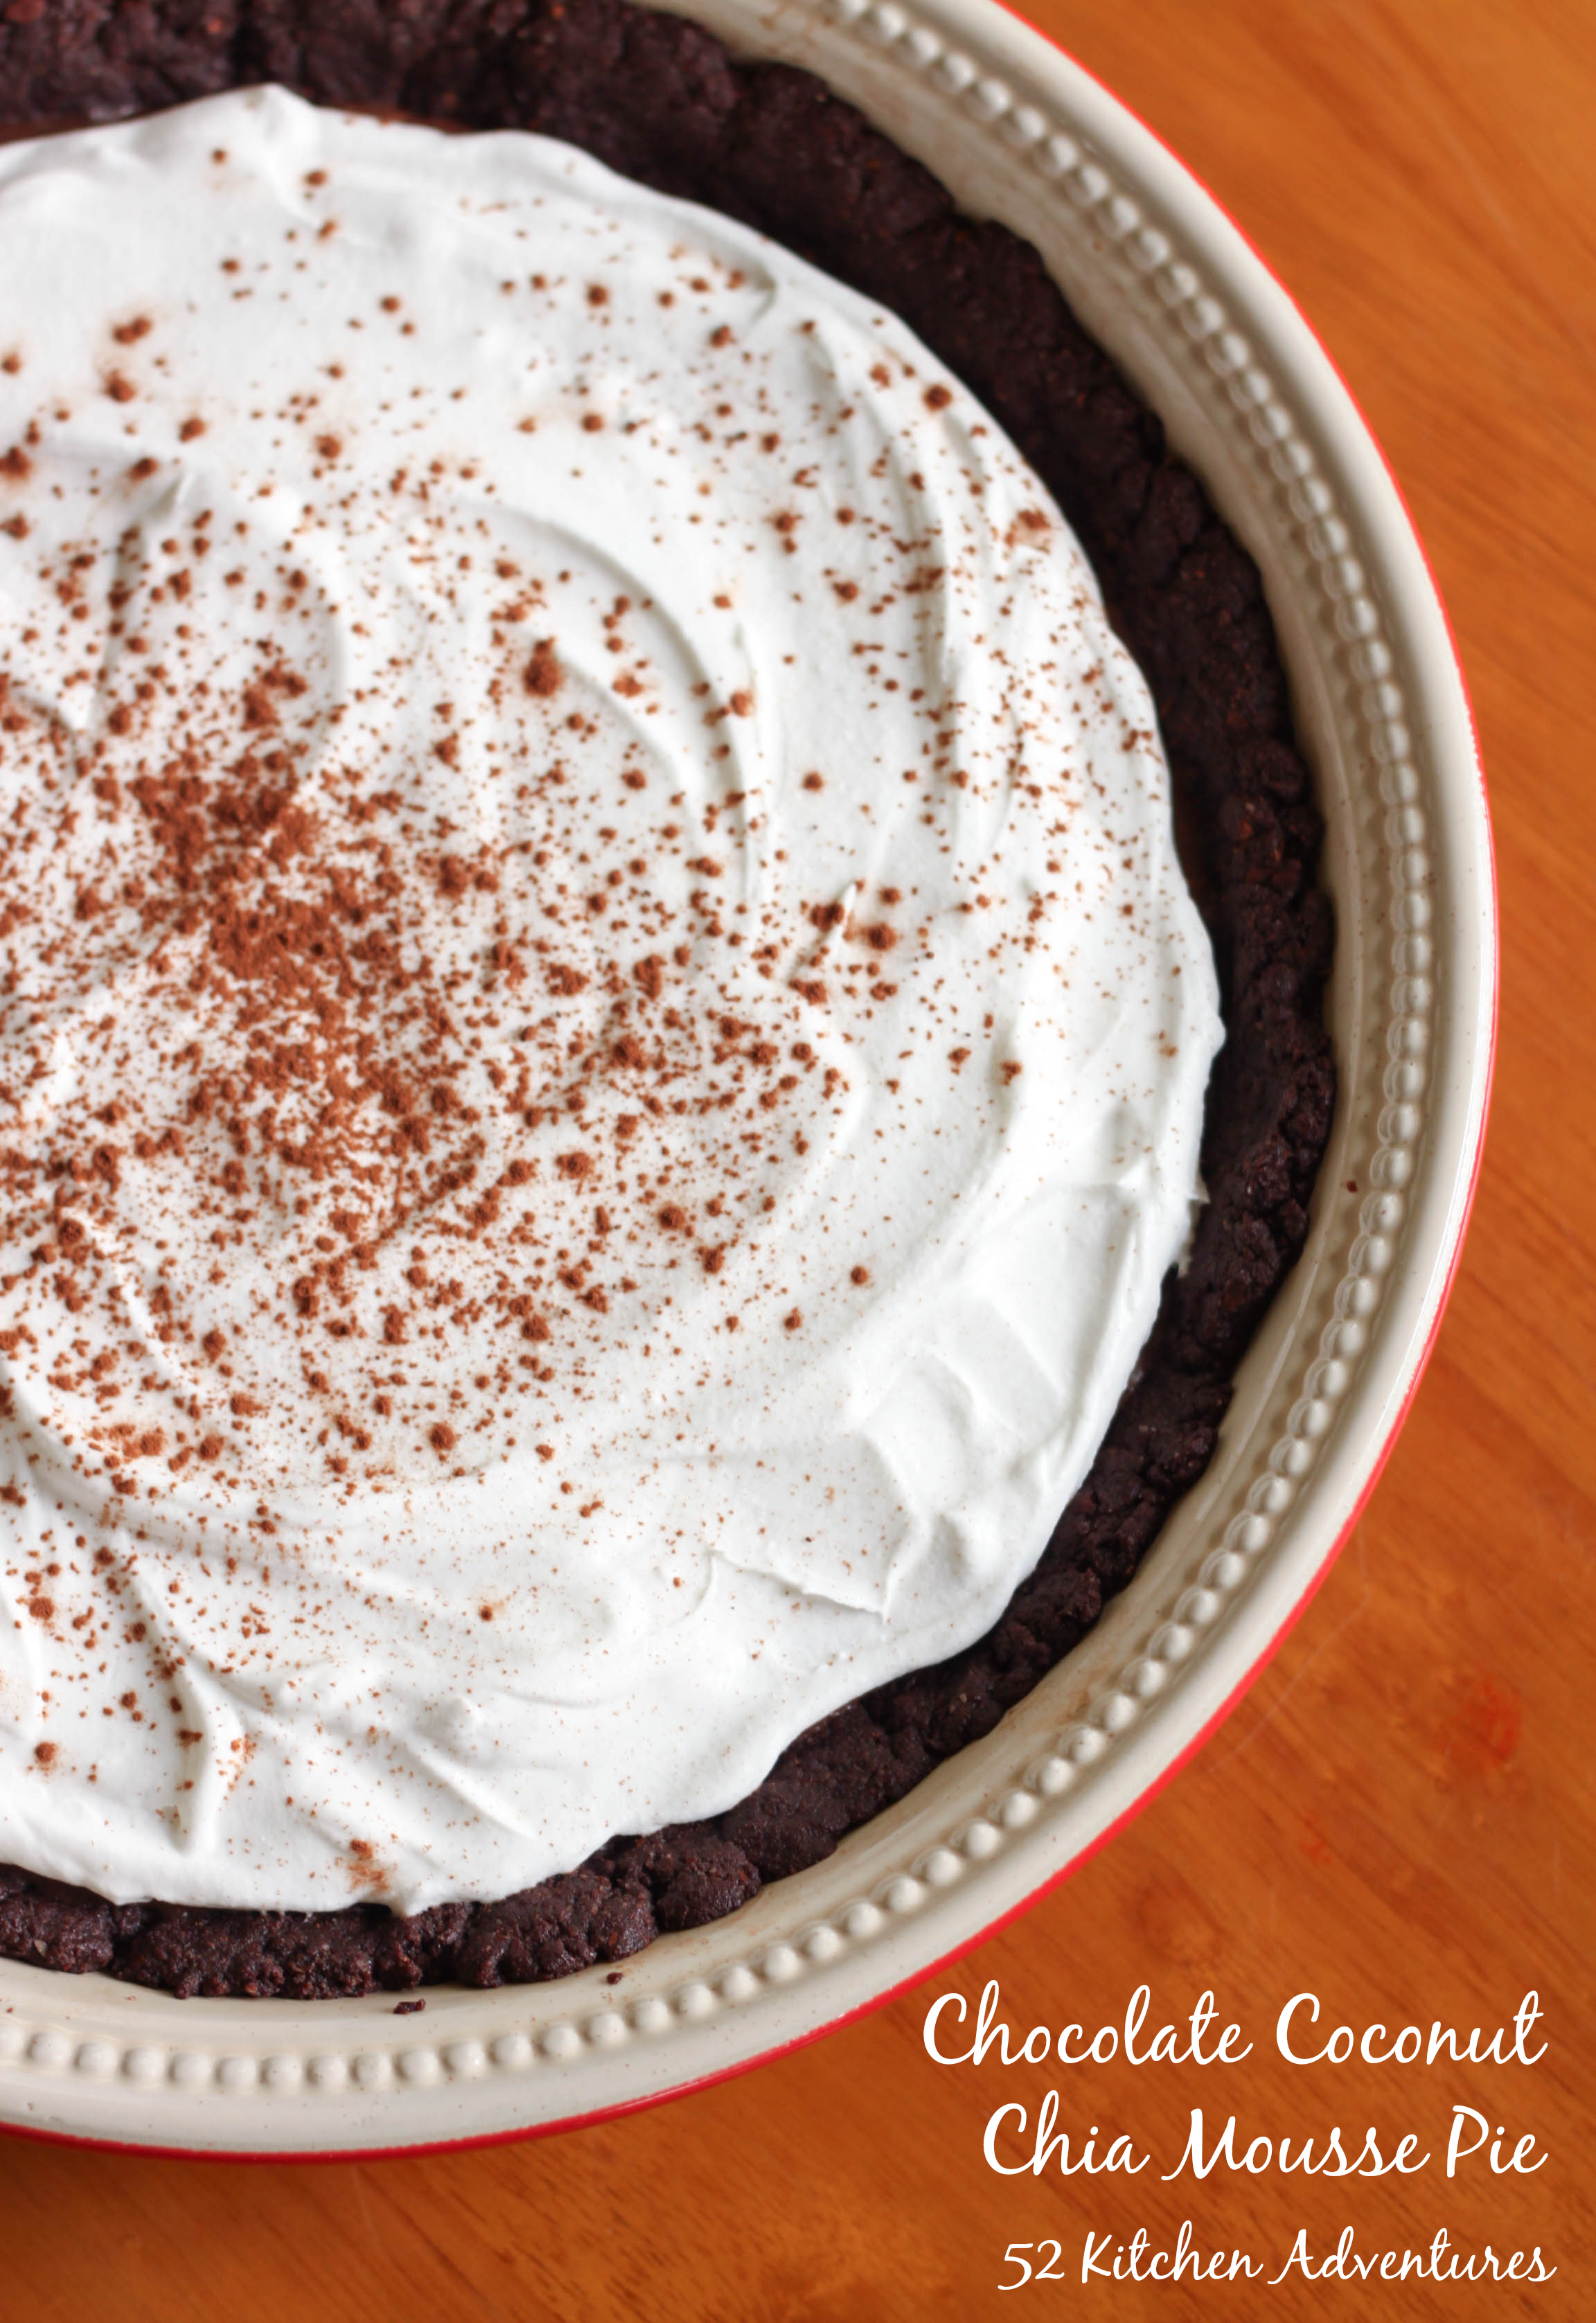 Chocolate Coconut Chia Mousse Pie.jpg